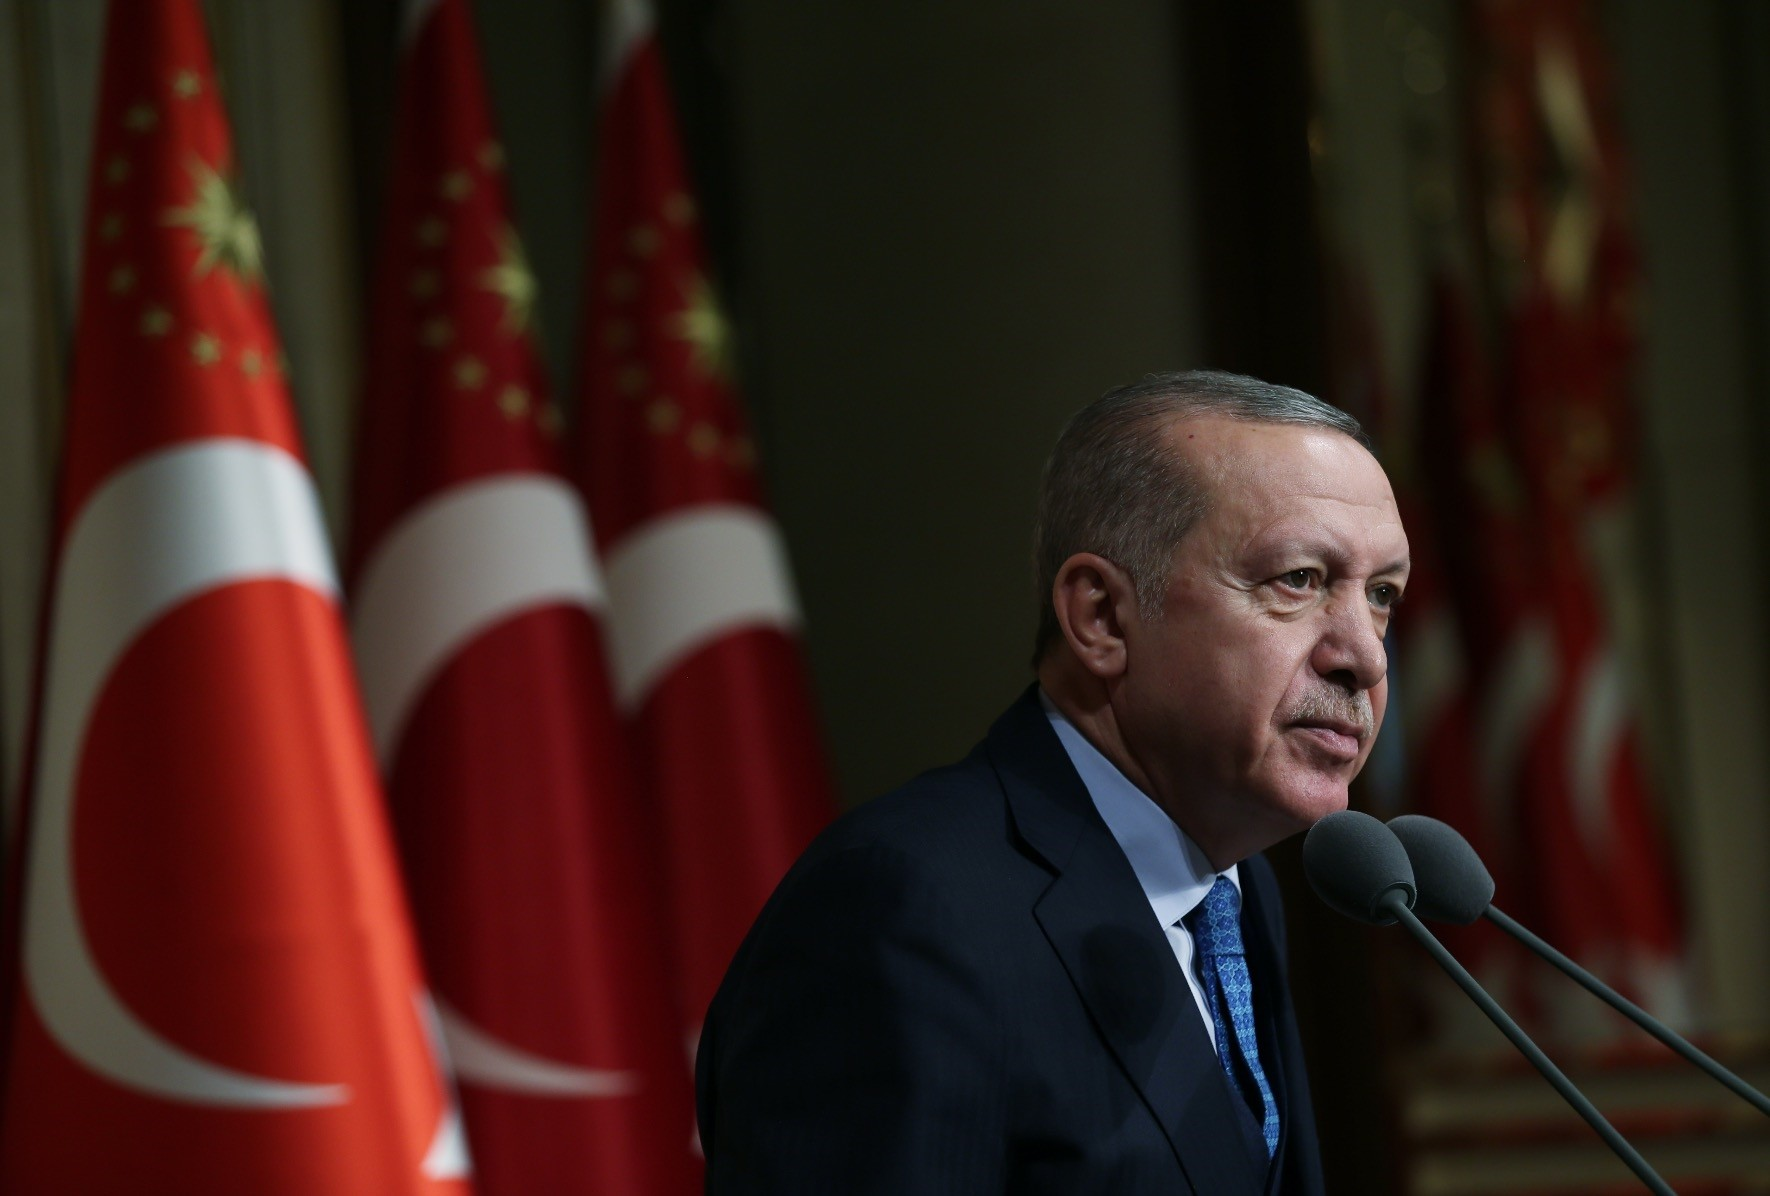 In his New Yearu2019s message, Erdou011fan underscored that Turkey sides with stability, justice, tolerance and peace in its region and across the world.